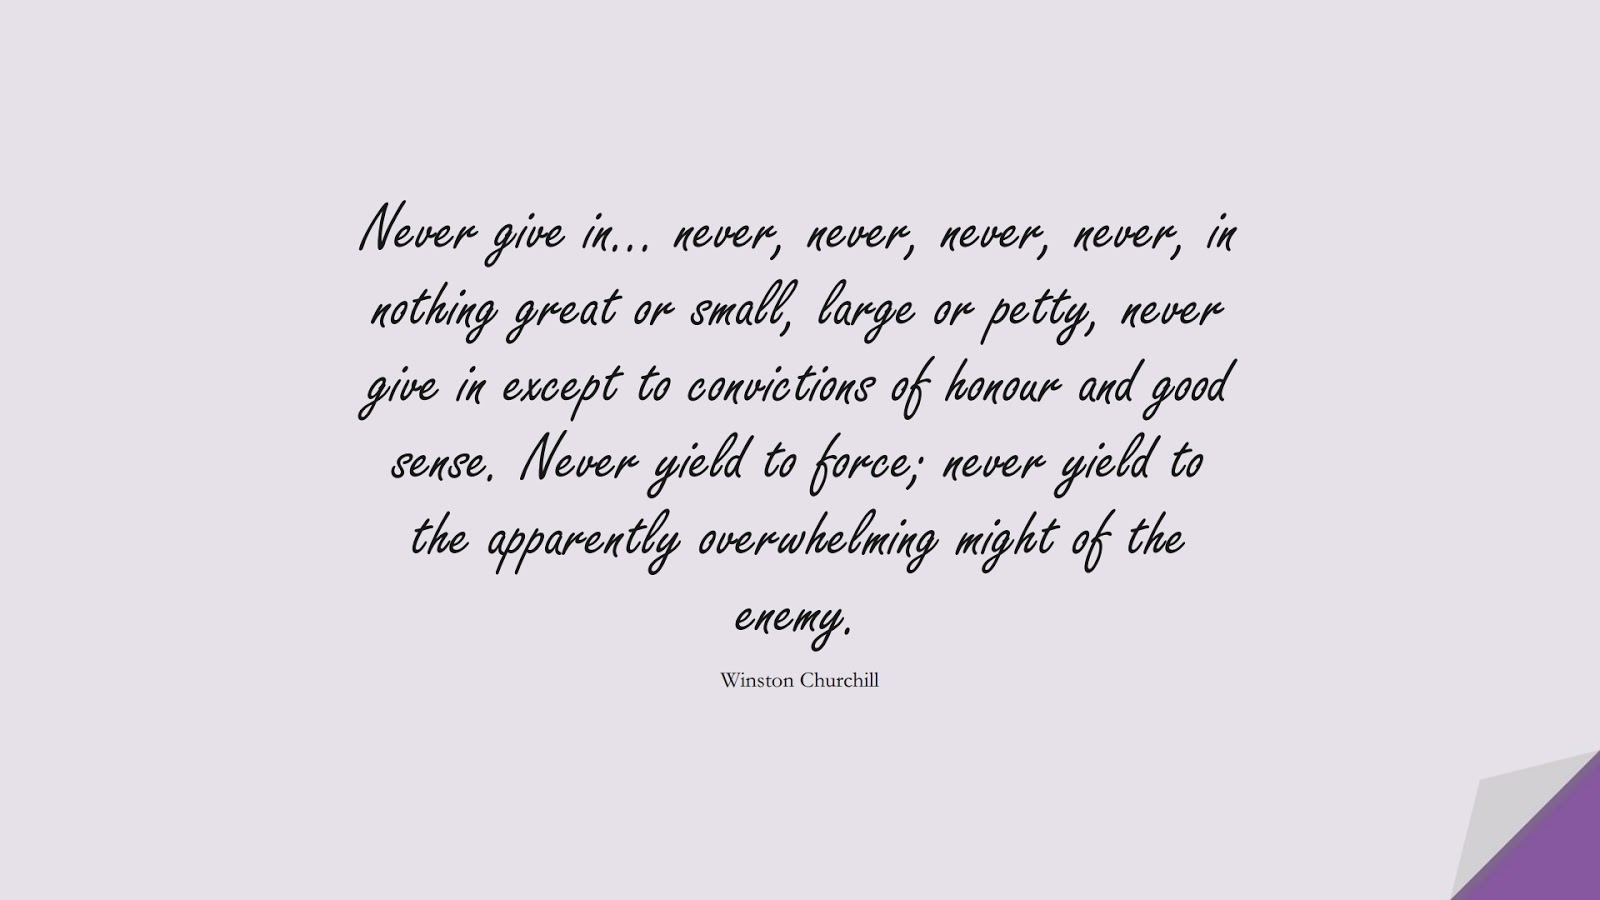 Never give in… never, never, never, never, in nothing great or small, large or petty, never give in except to convictions of honour and good sense. Never yield to force; never yield to the apparently overwhelming might of the enemy. (Winston Churchill);  #EncouragingQuotes